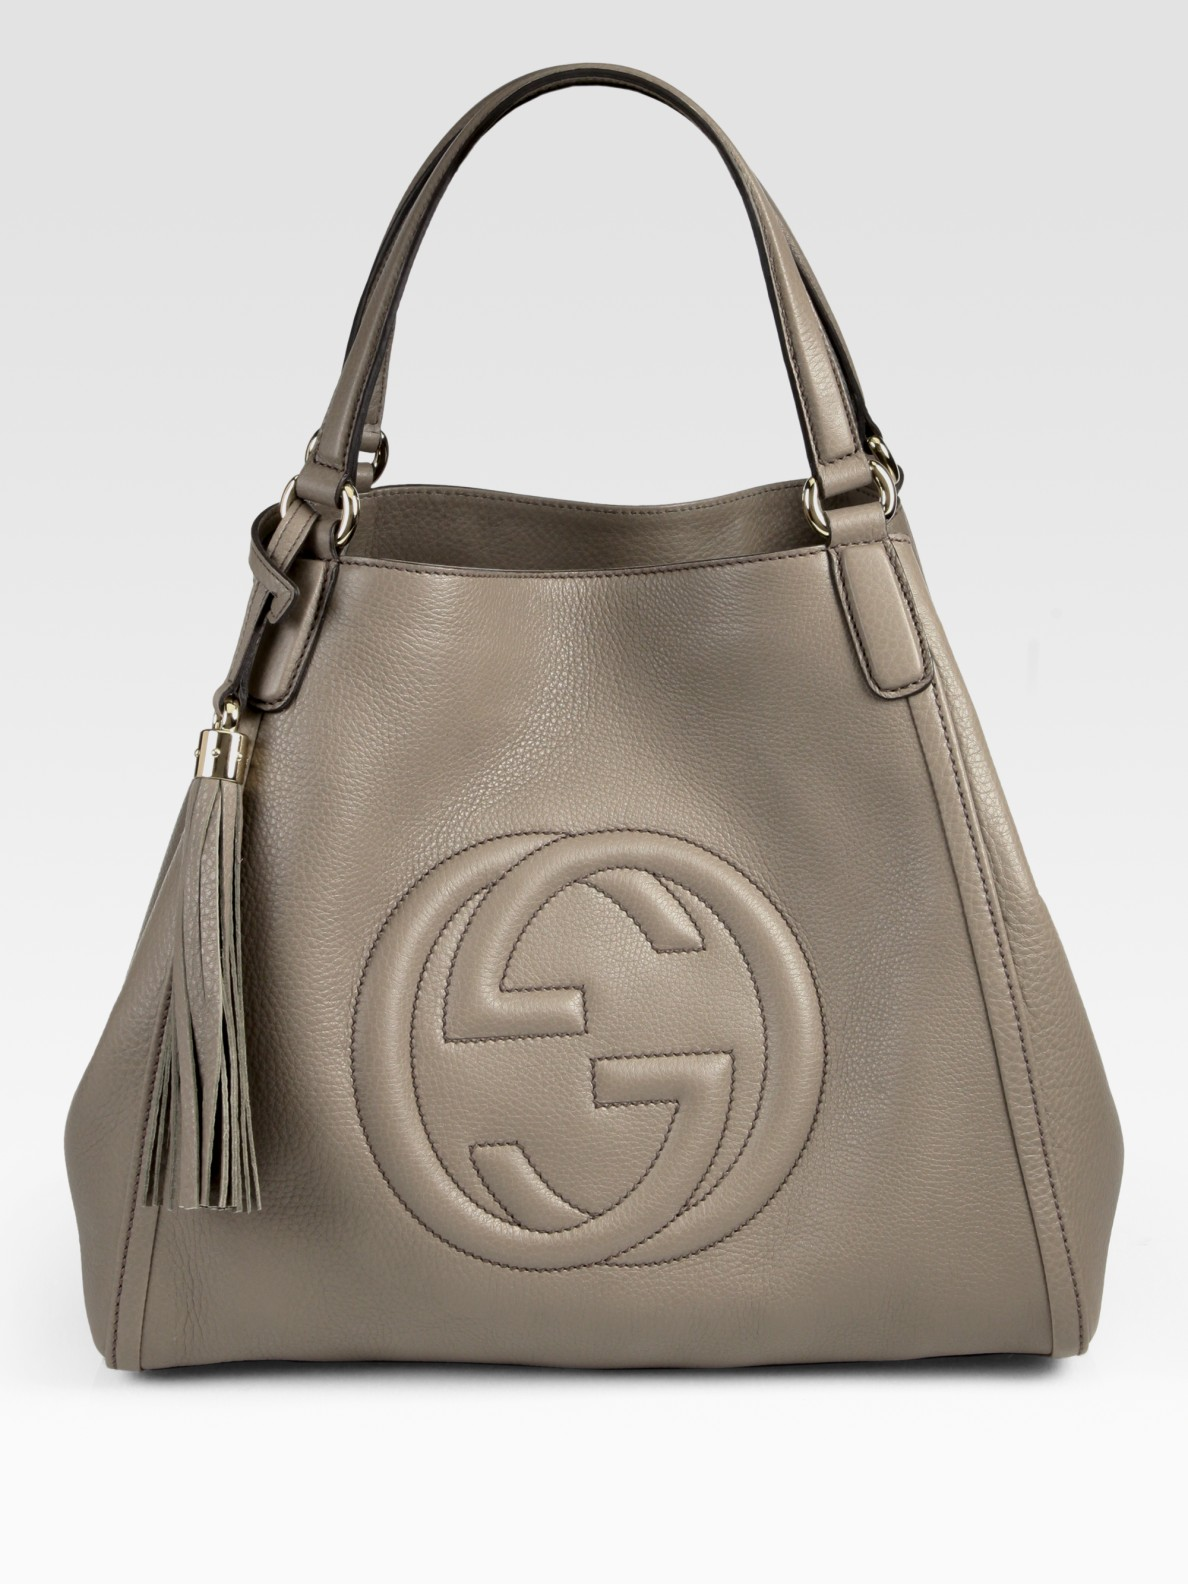 bb851627fced Gucci Bag London Sale | Stanford Center for Opportunity Policy in ...